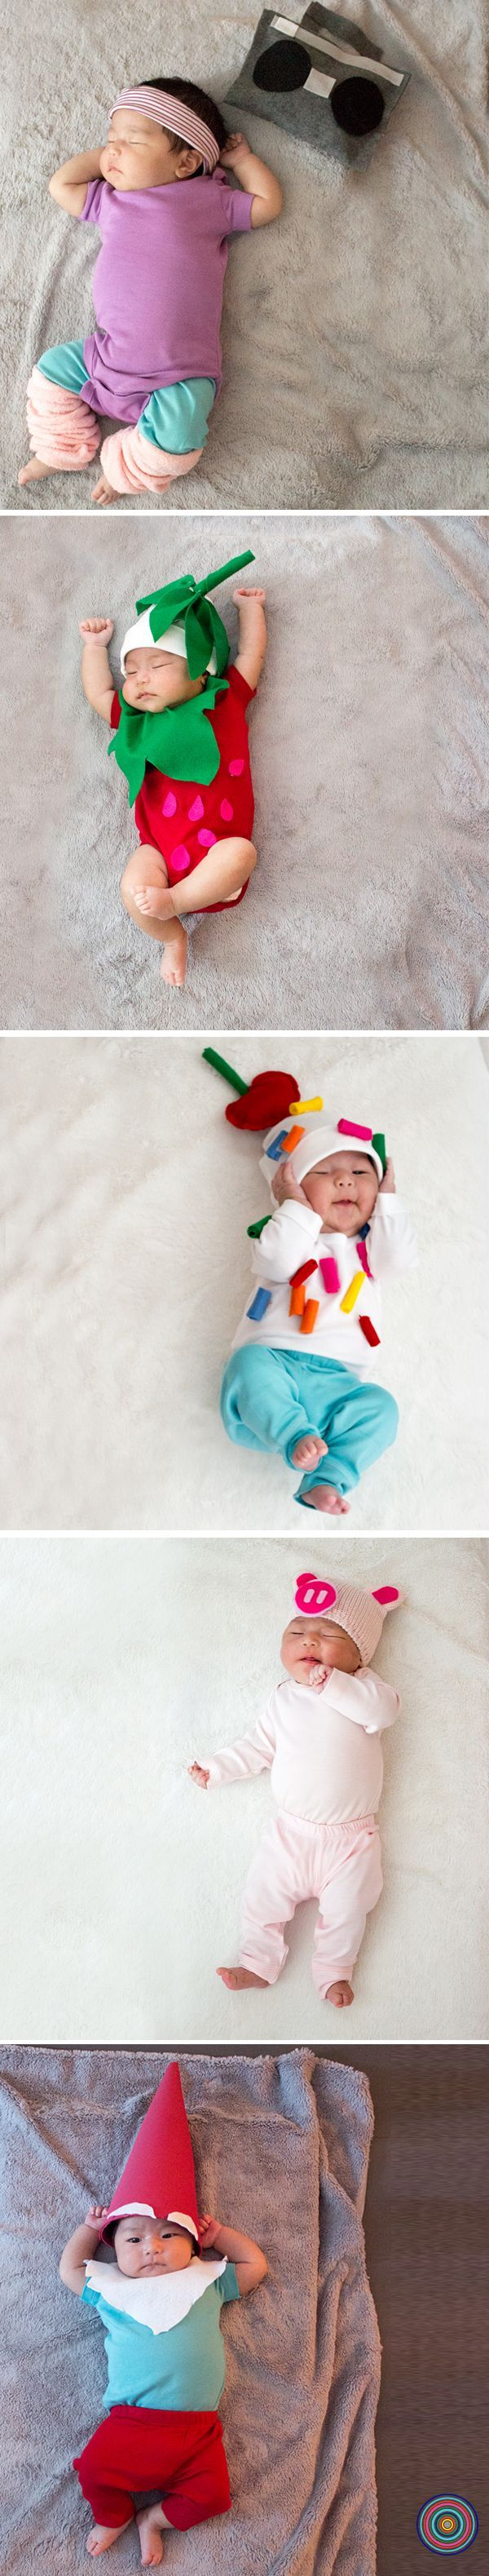 Easy DIY Baby Costumes: Workout Baby • Strawberry • Ice Cream Sundae • Piglet • Gnome. Super soft basics + simple accessories = easy, cozy costumes for baby.